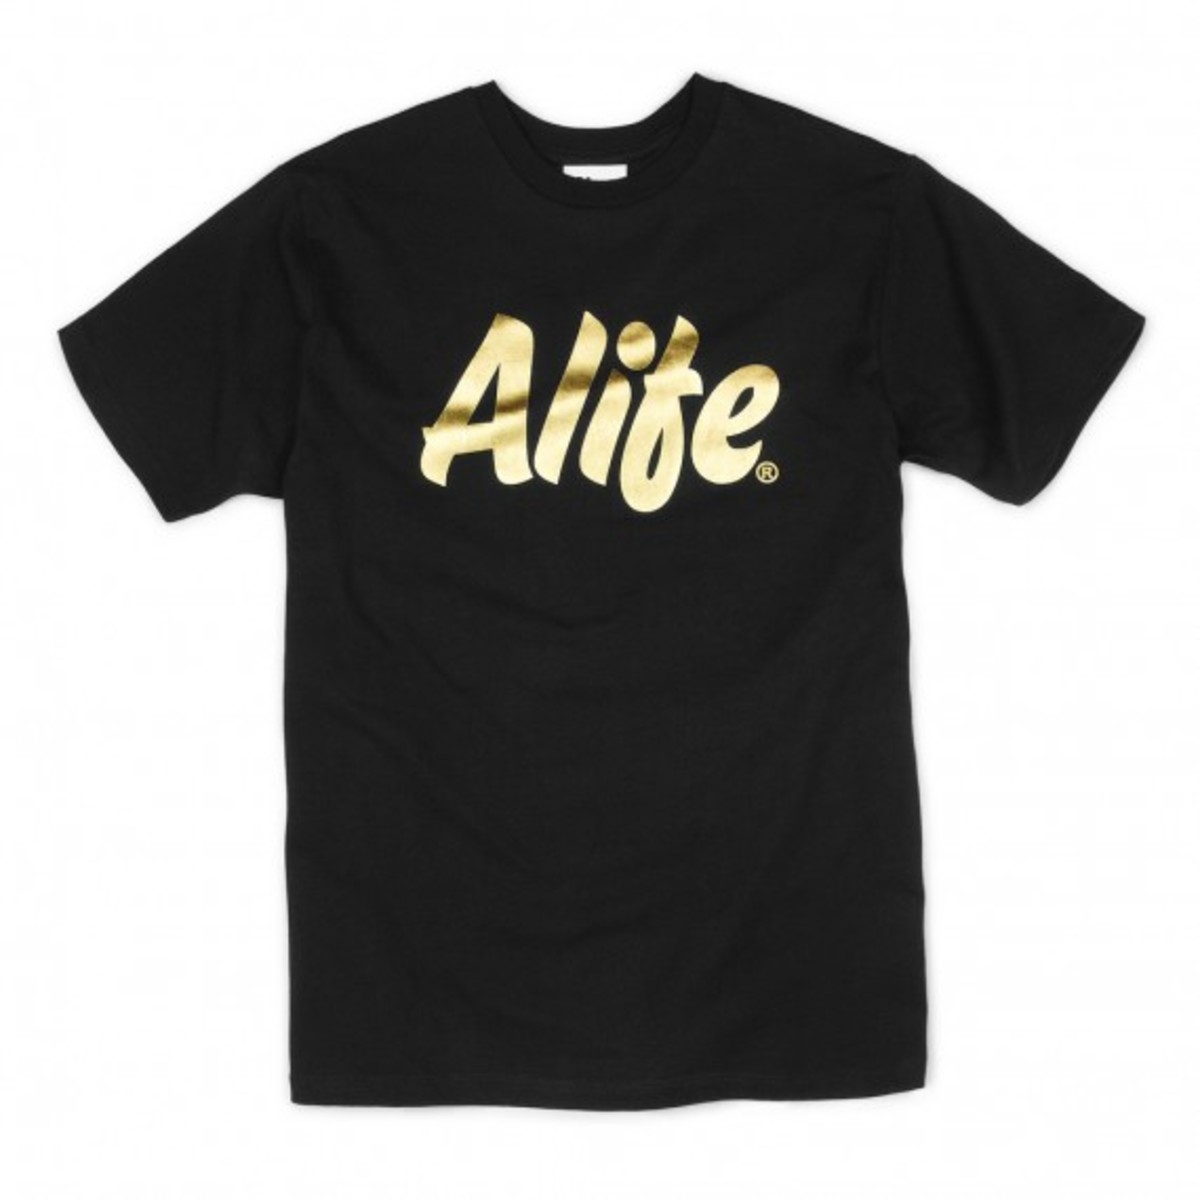 alife-tshirts-accessories-fall-2011-05